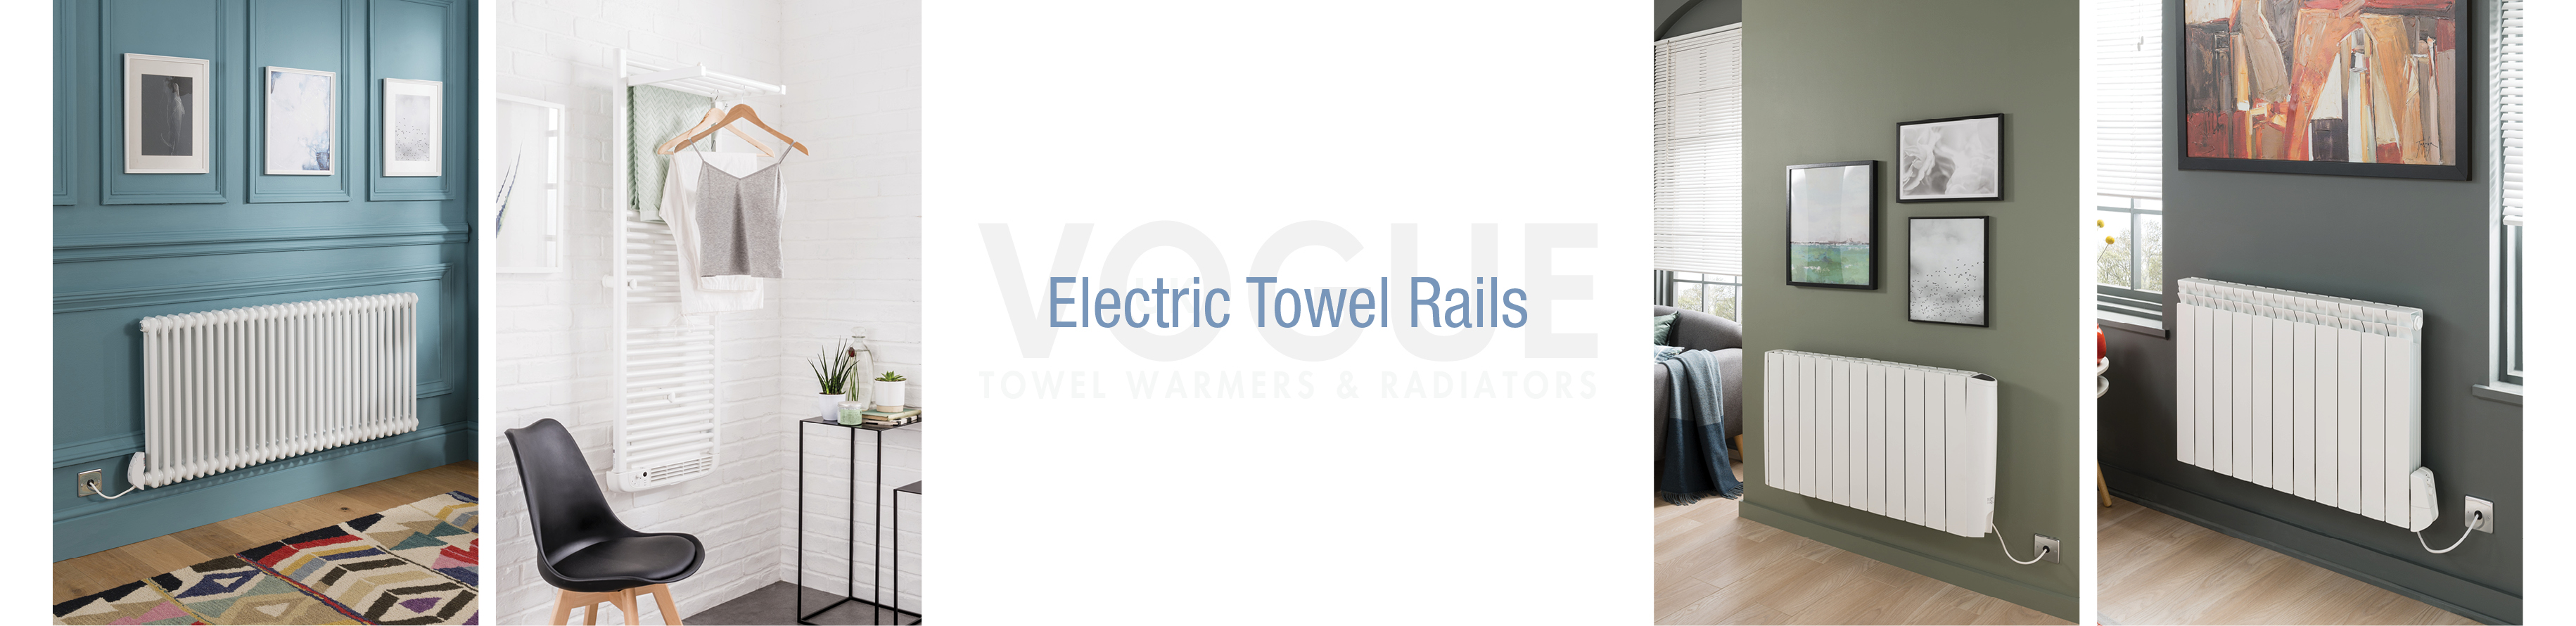 electric towel rails product header